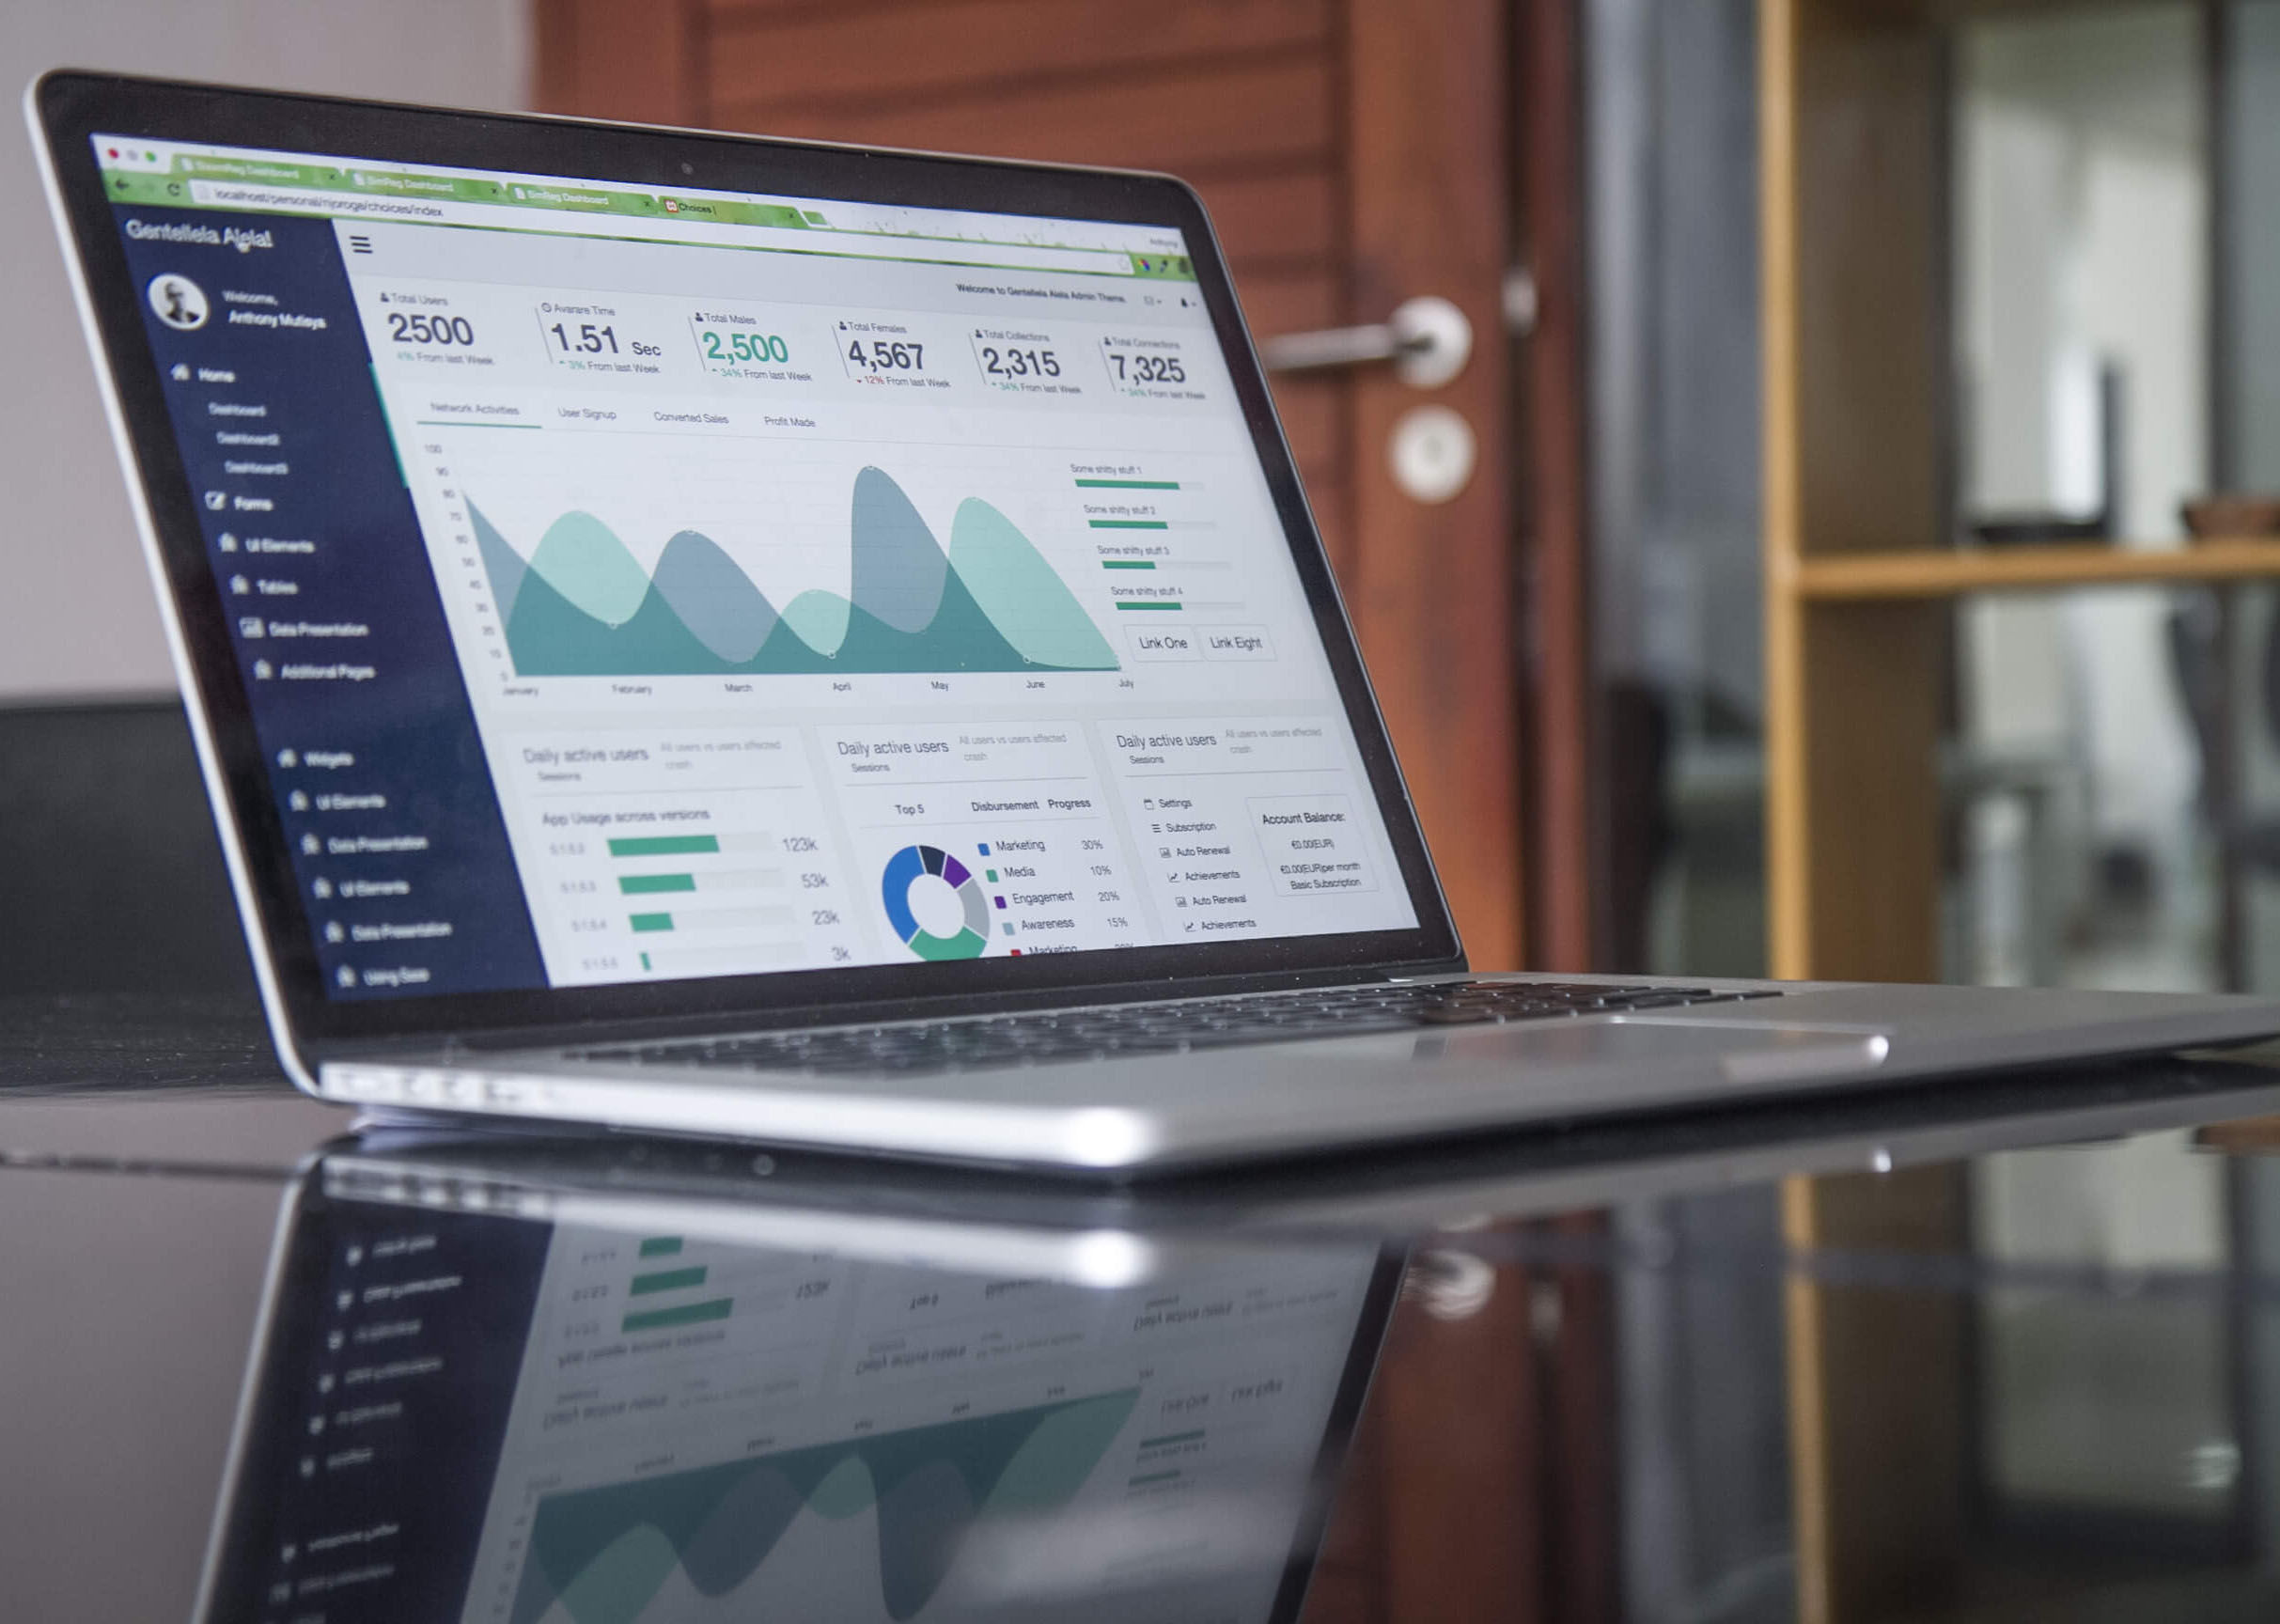 Analysis - Perhaps you already have user research data, big or small, but don't know how to analyze it and turn it into a new successful product or service. We can help you review big trends and recommend if further research is needed, or help identify areas of opportunity, all to help uncover hidden gems.